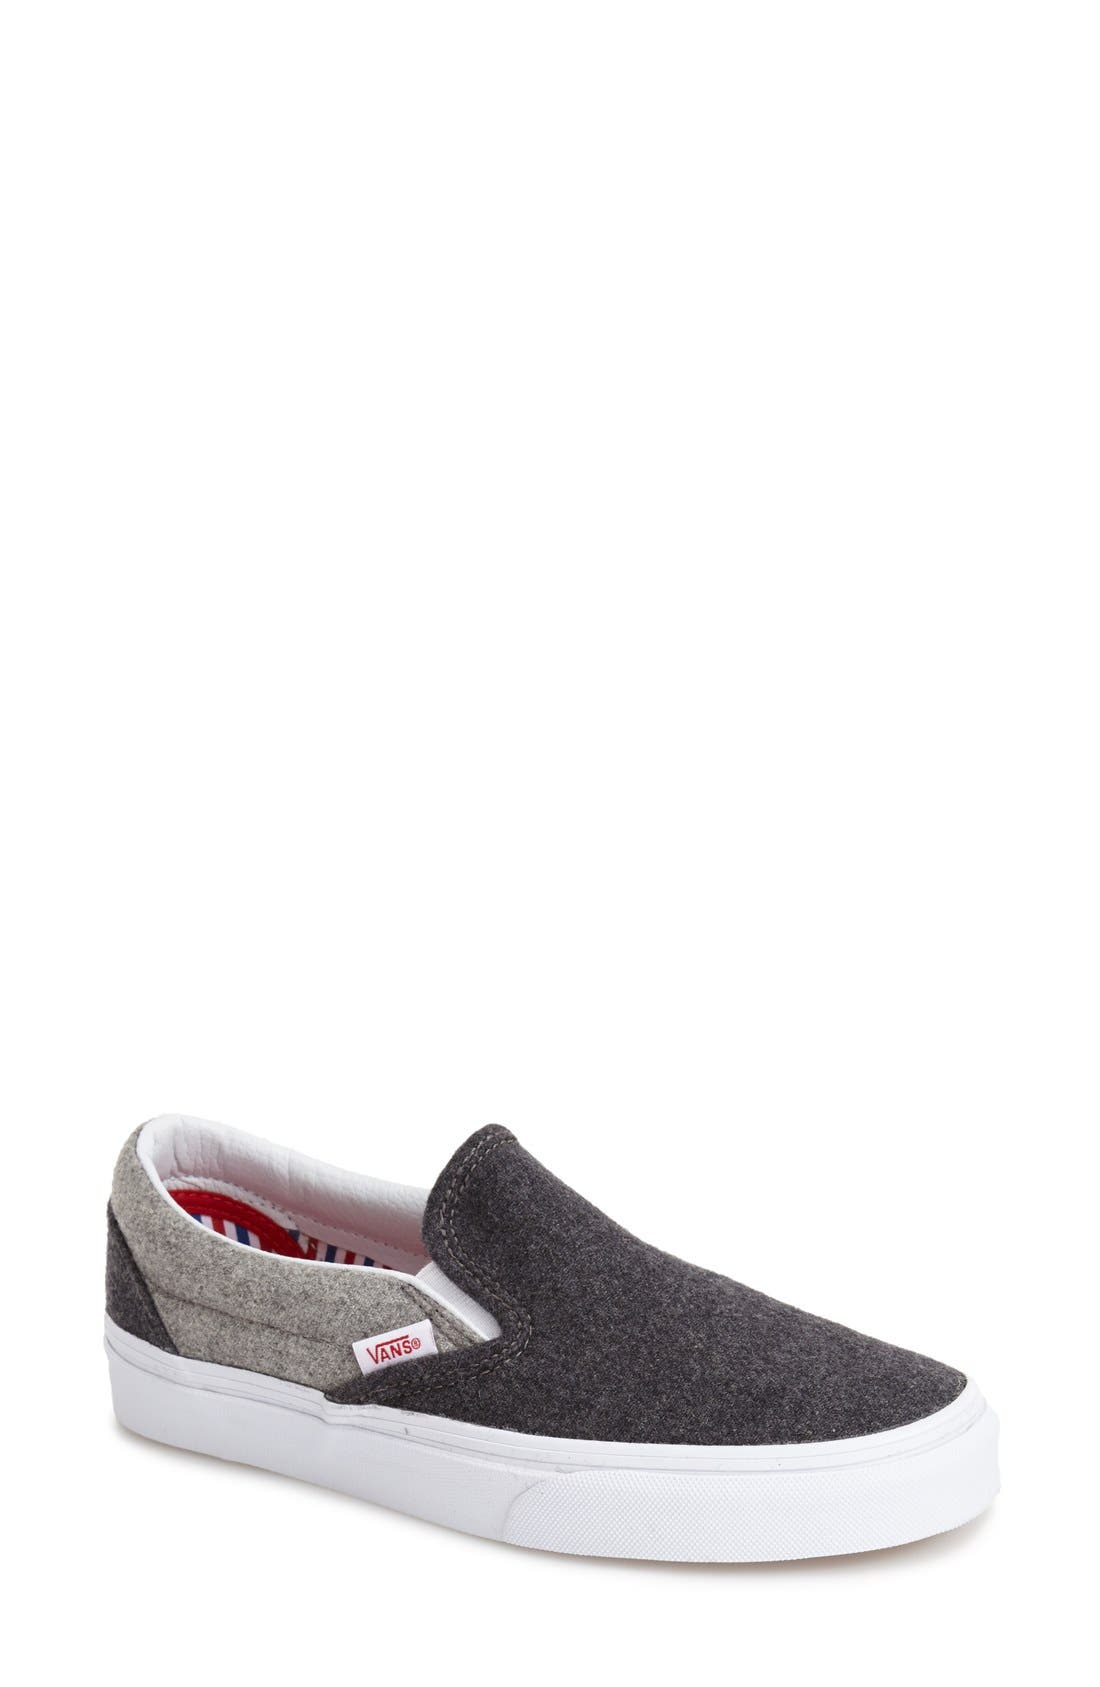 'Classic - Wool' Slip-On Sneaker, Main, color, 020